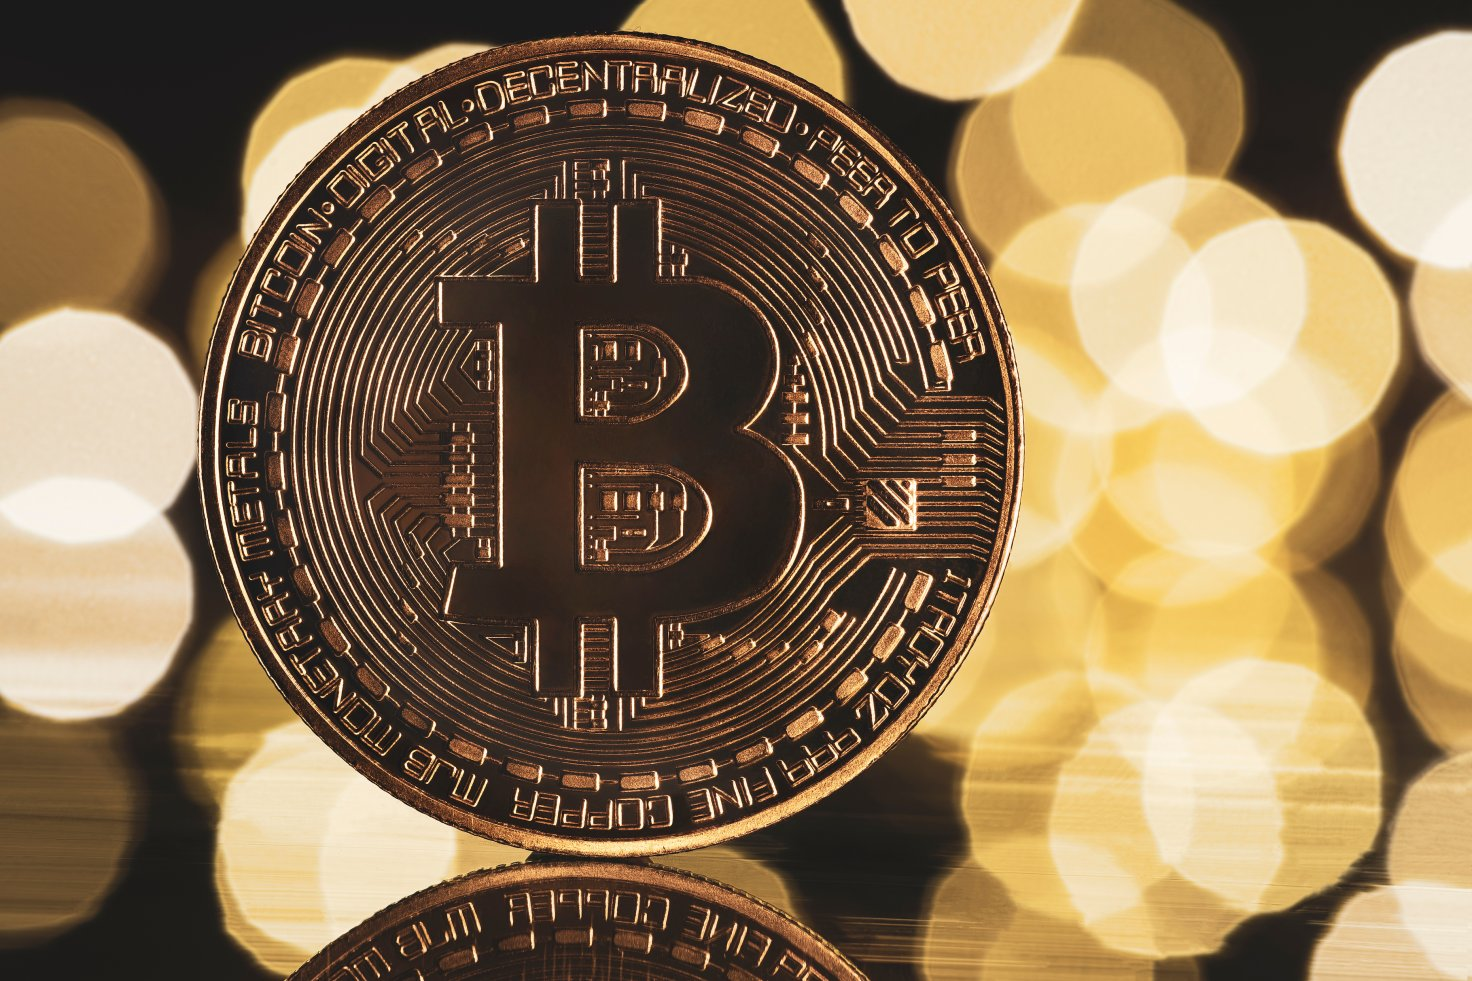 best cryptocurrency to invest 2021 under 1 cent